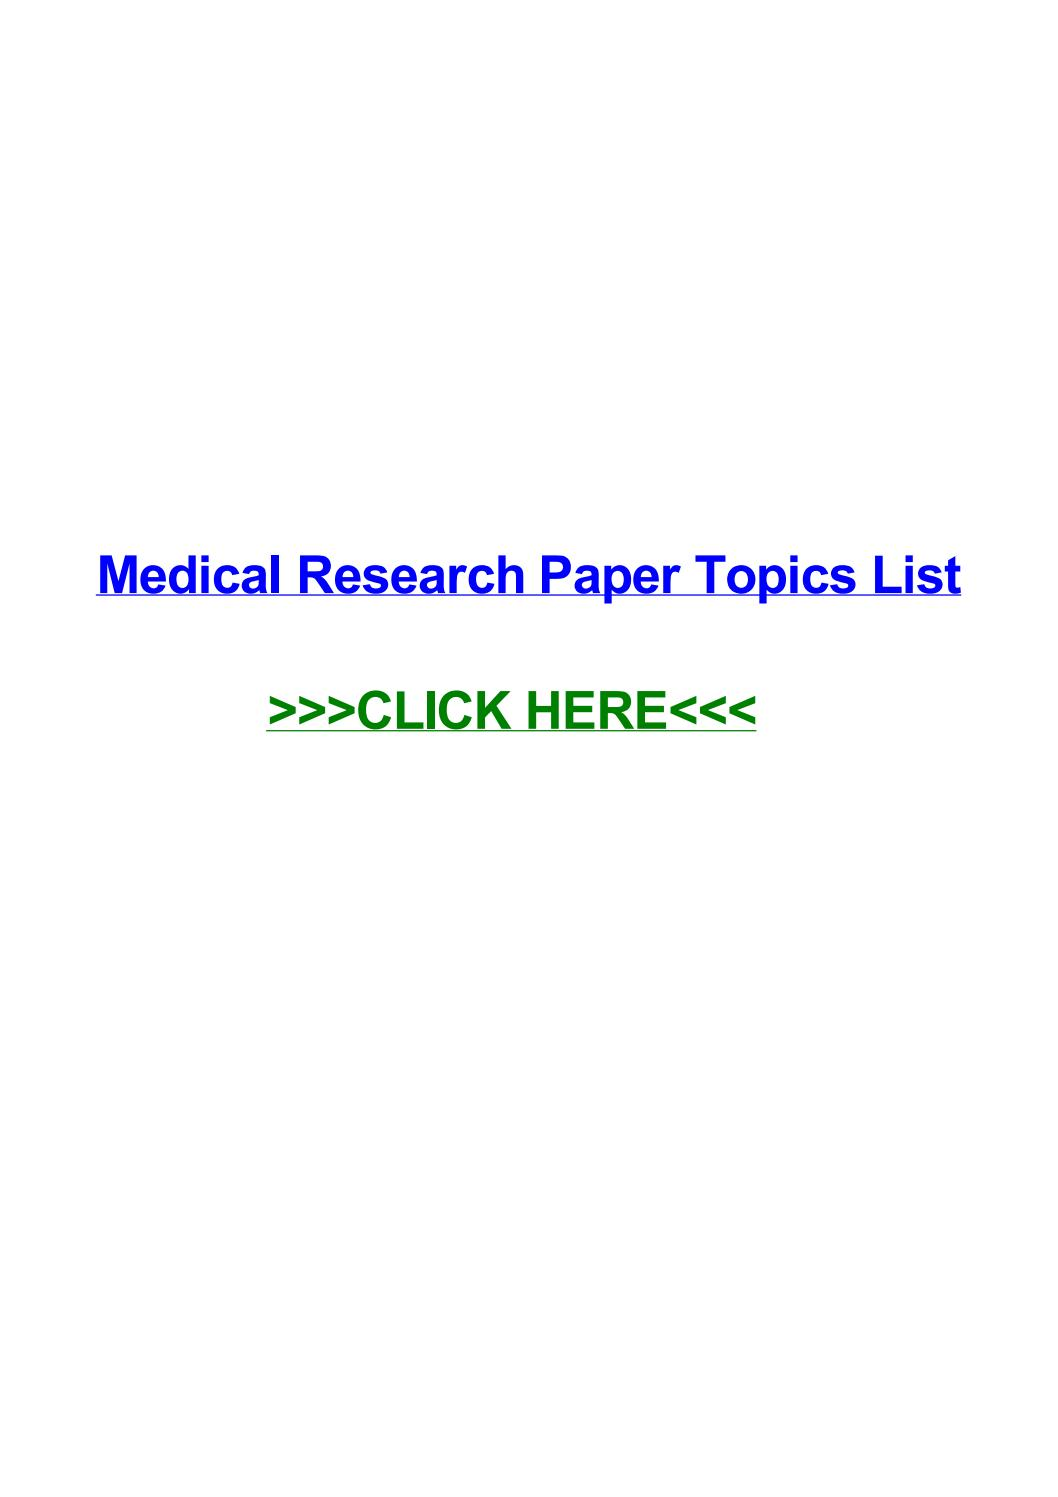 008 Research Paper Medical Topics Page 1 Magnificent Microbiology Argumentative Full